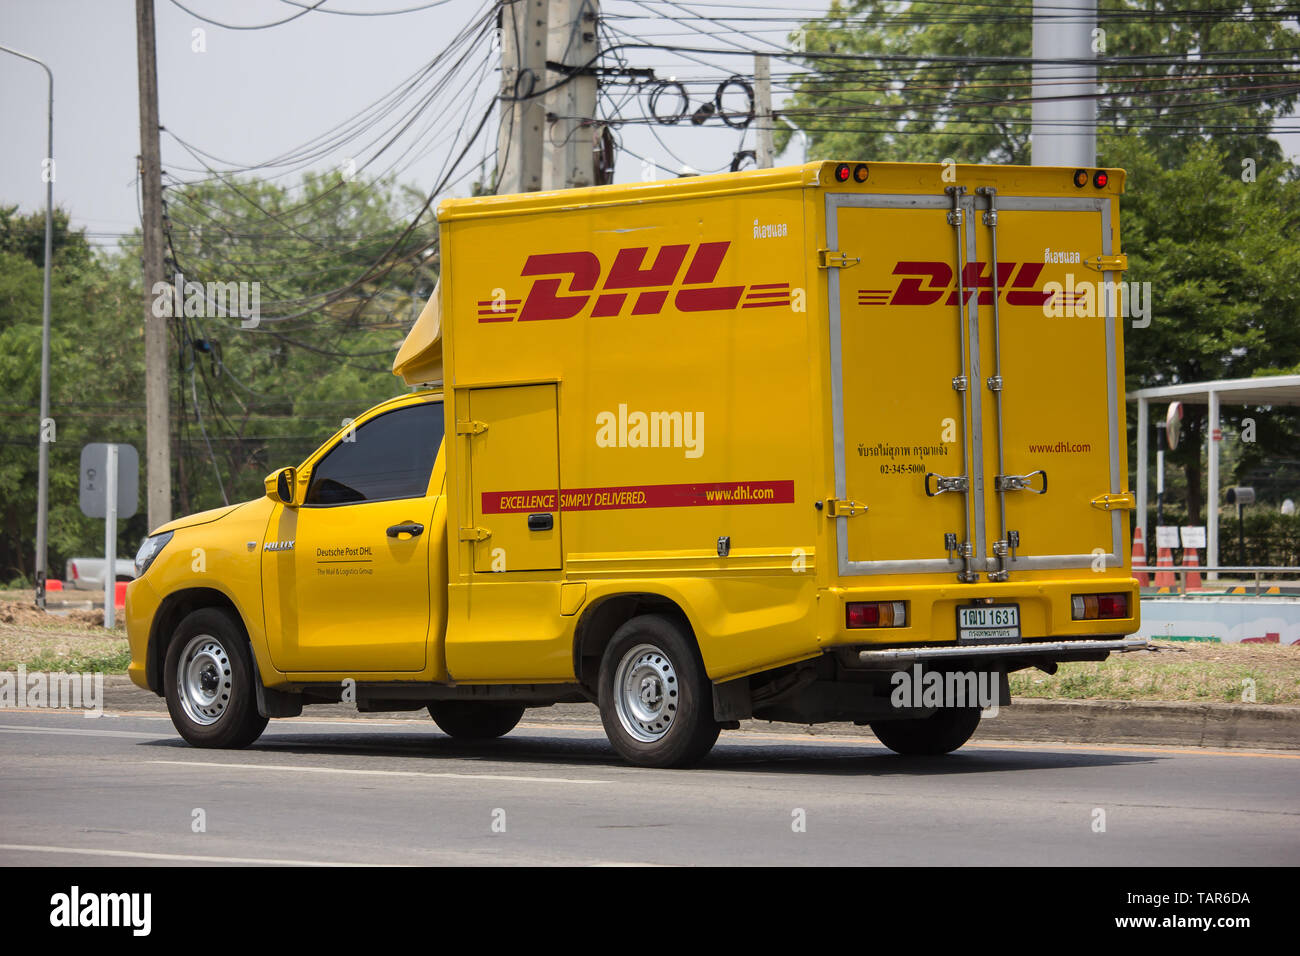 Dhl Pickup Locations >> Chiangmai Thailand May 17 2019 Dhl Express And Logistics